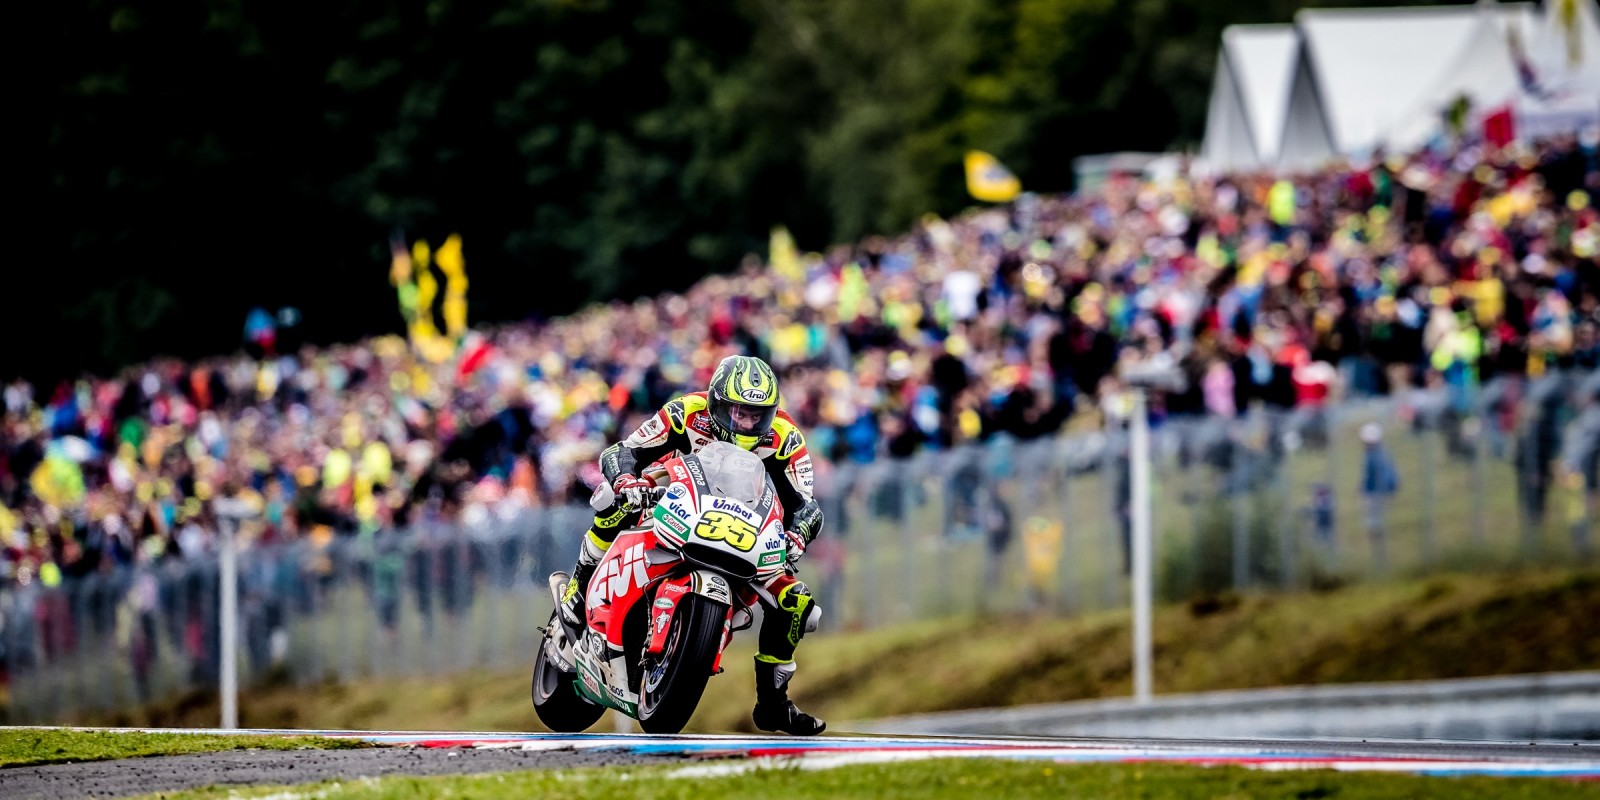 Cal Crutchlow at the 2016 MotoGP round 18 in Brno, Czech Republic